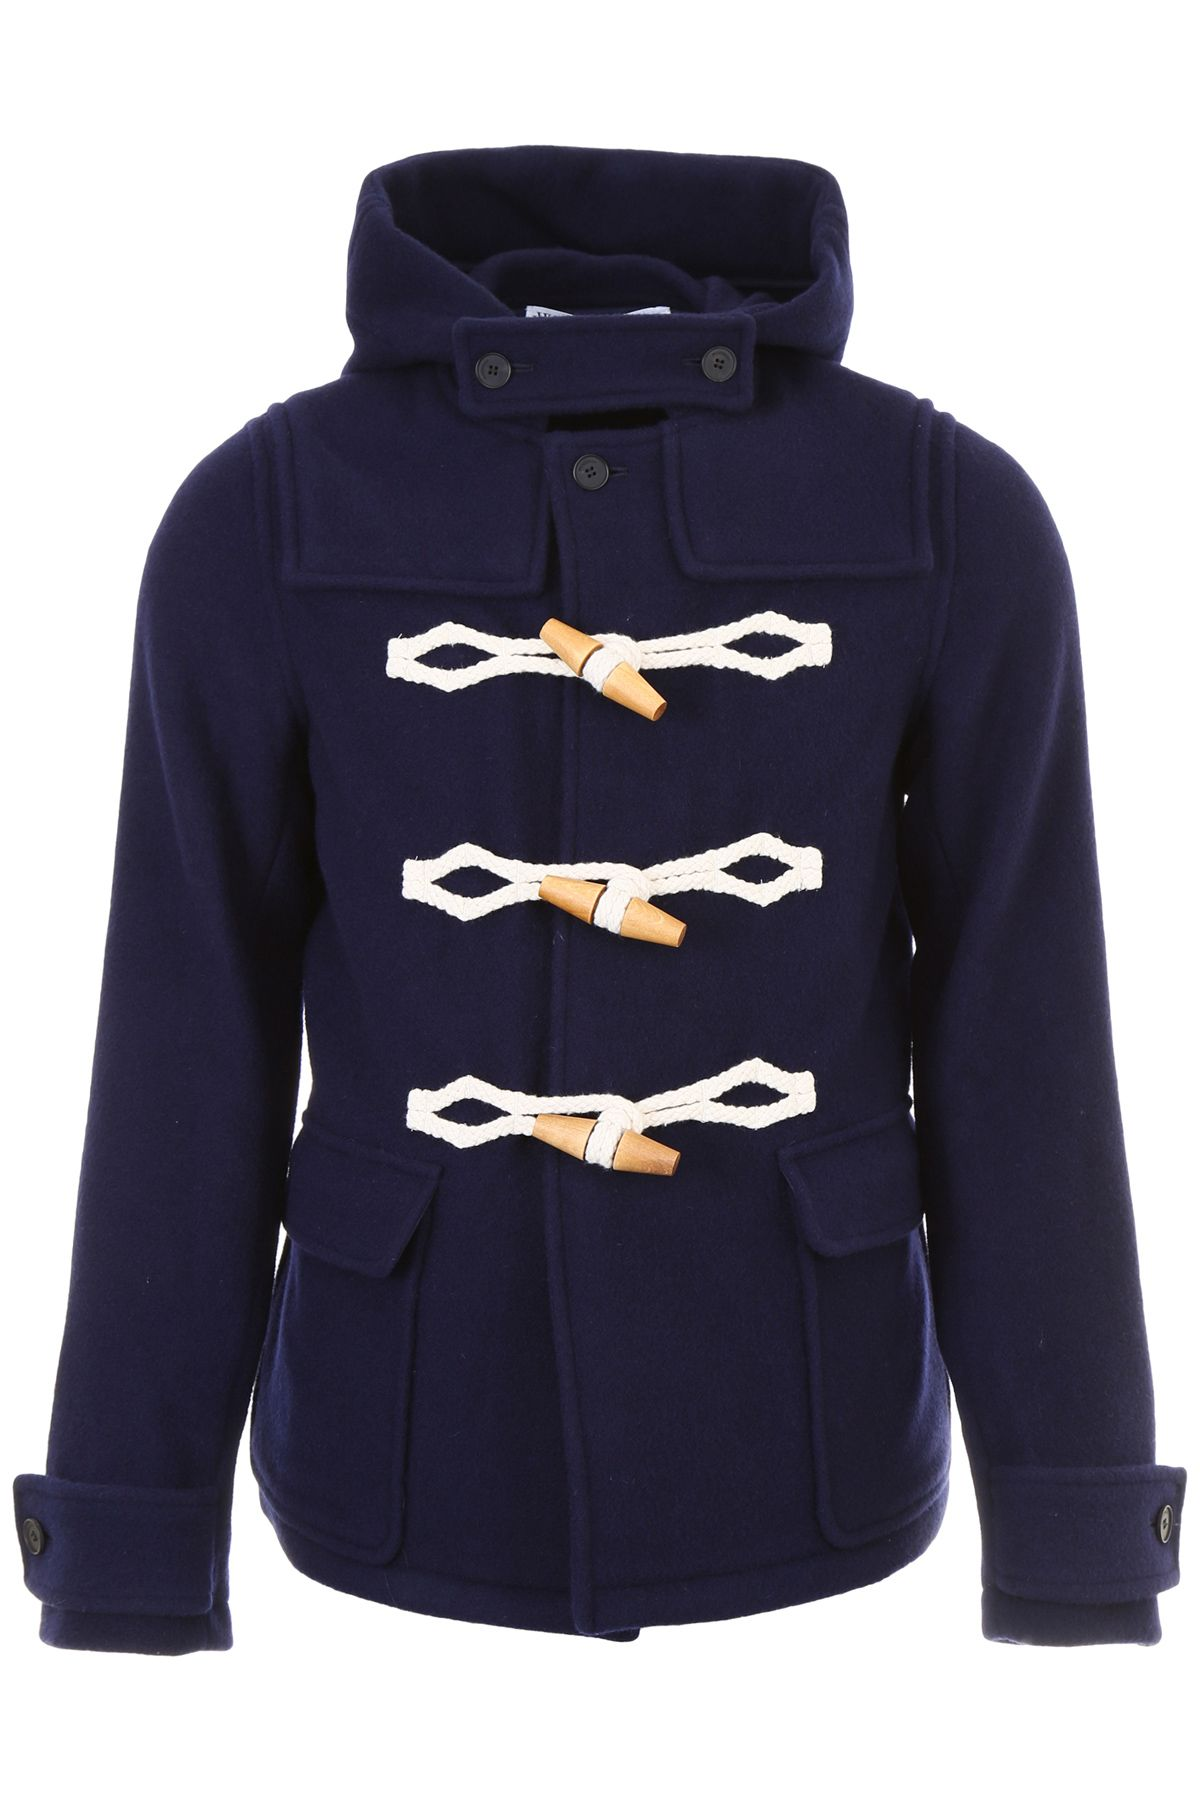 J.W. Anderson Duffle Coat With Maxi Toggles